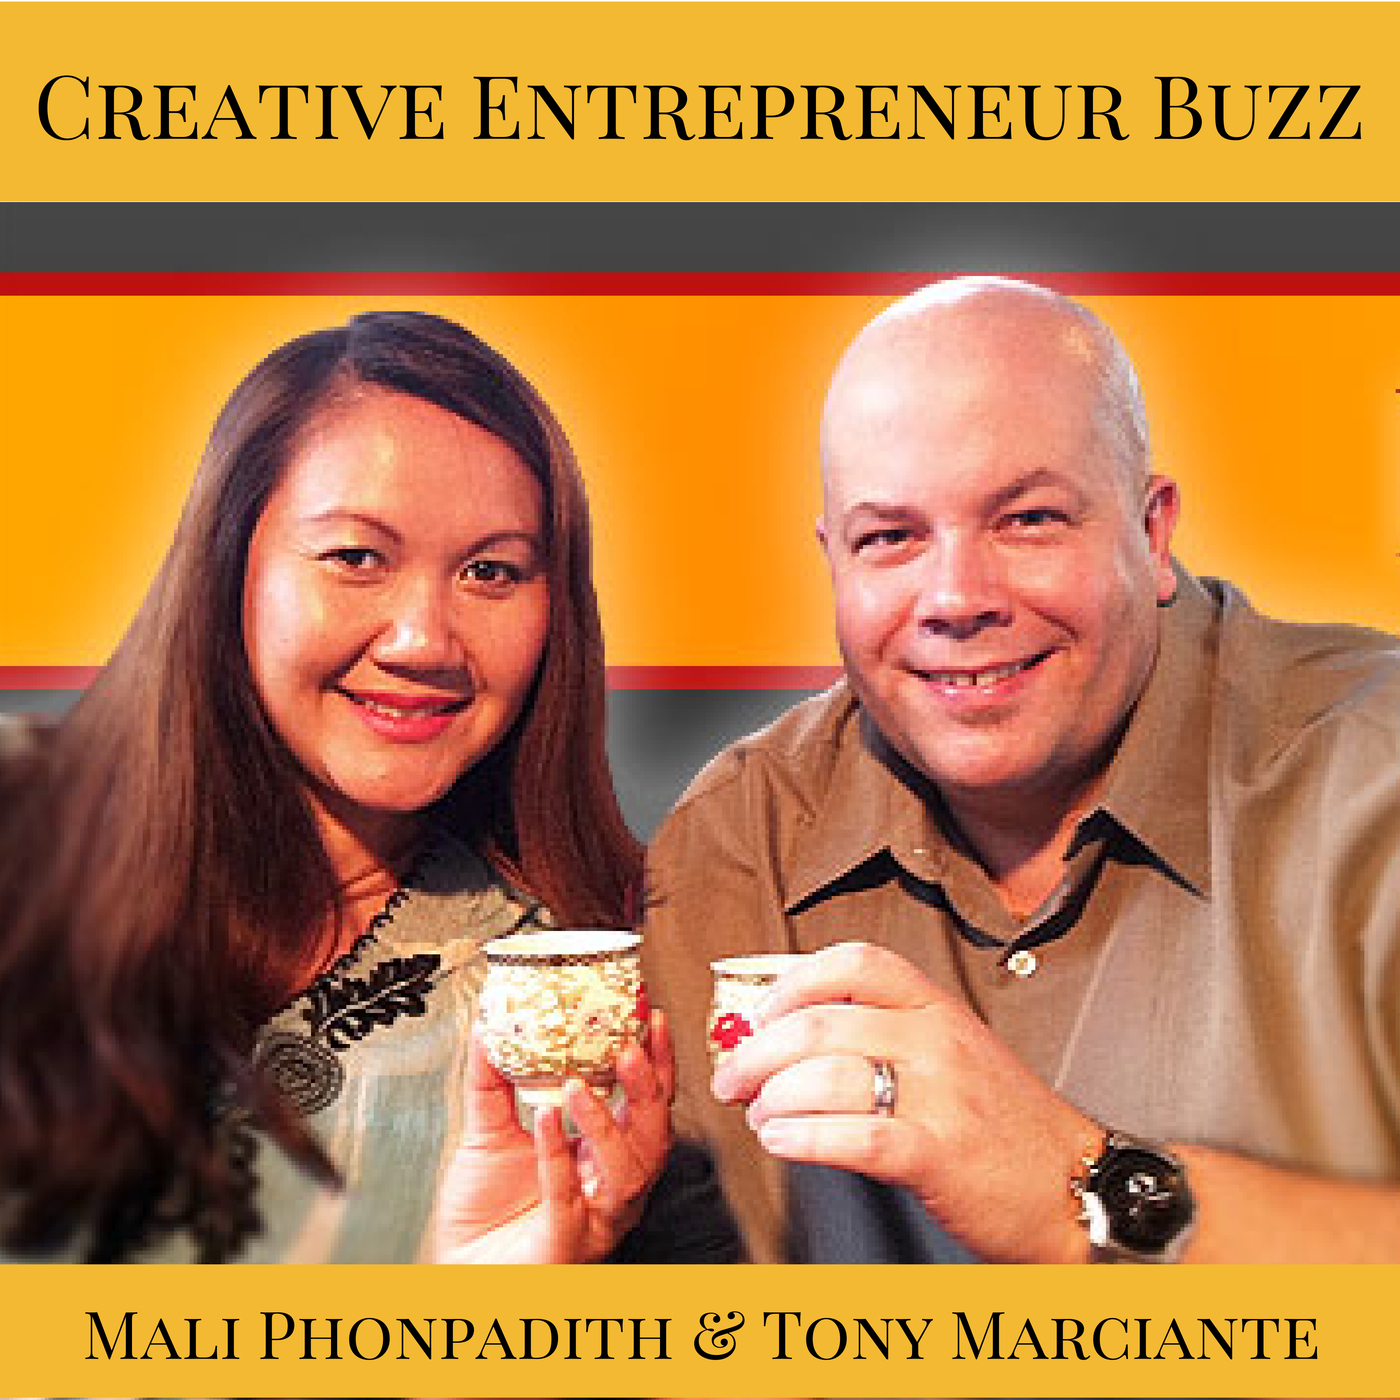 CreativeEntrepreneur.Buzz